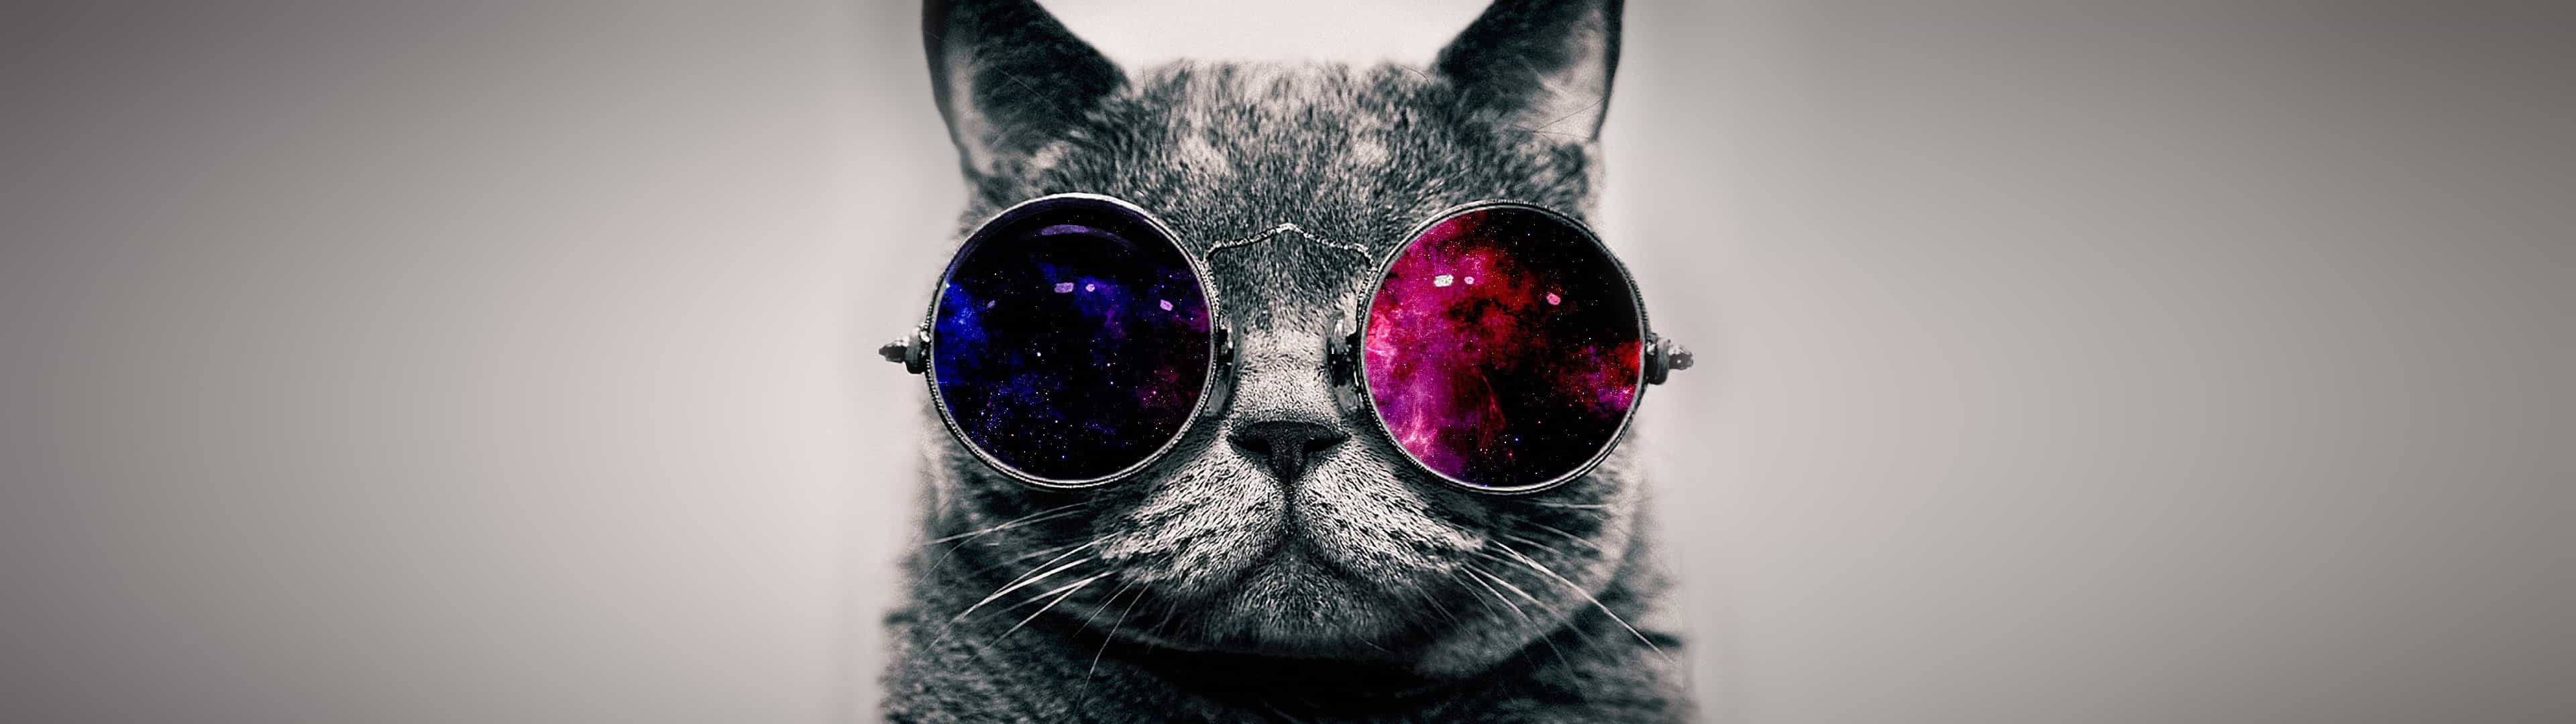 Cat With Sunglasses Dual Monitor Wallpaper